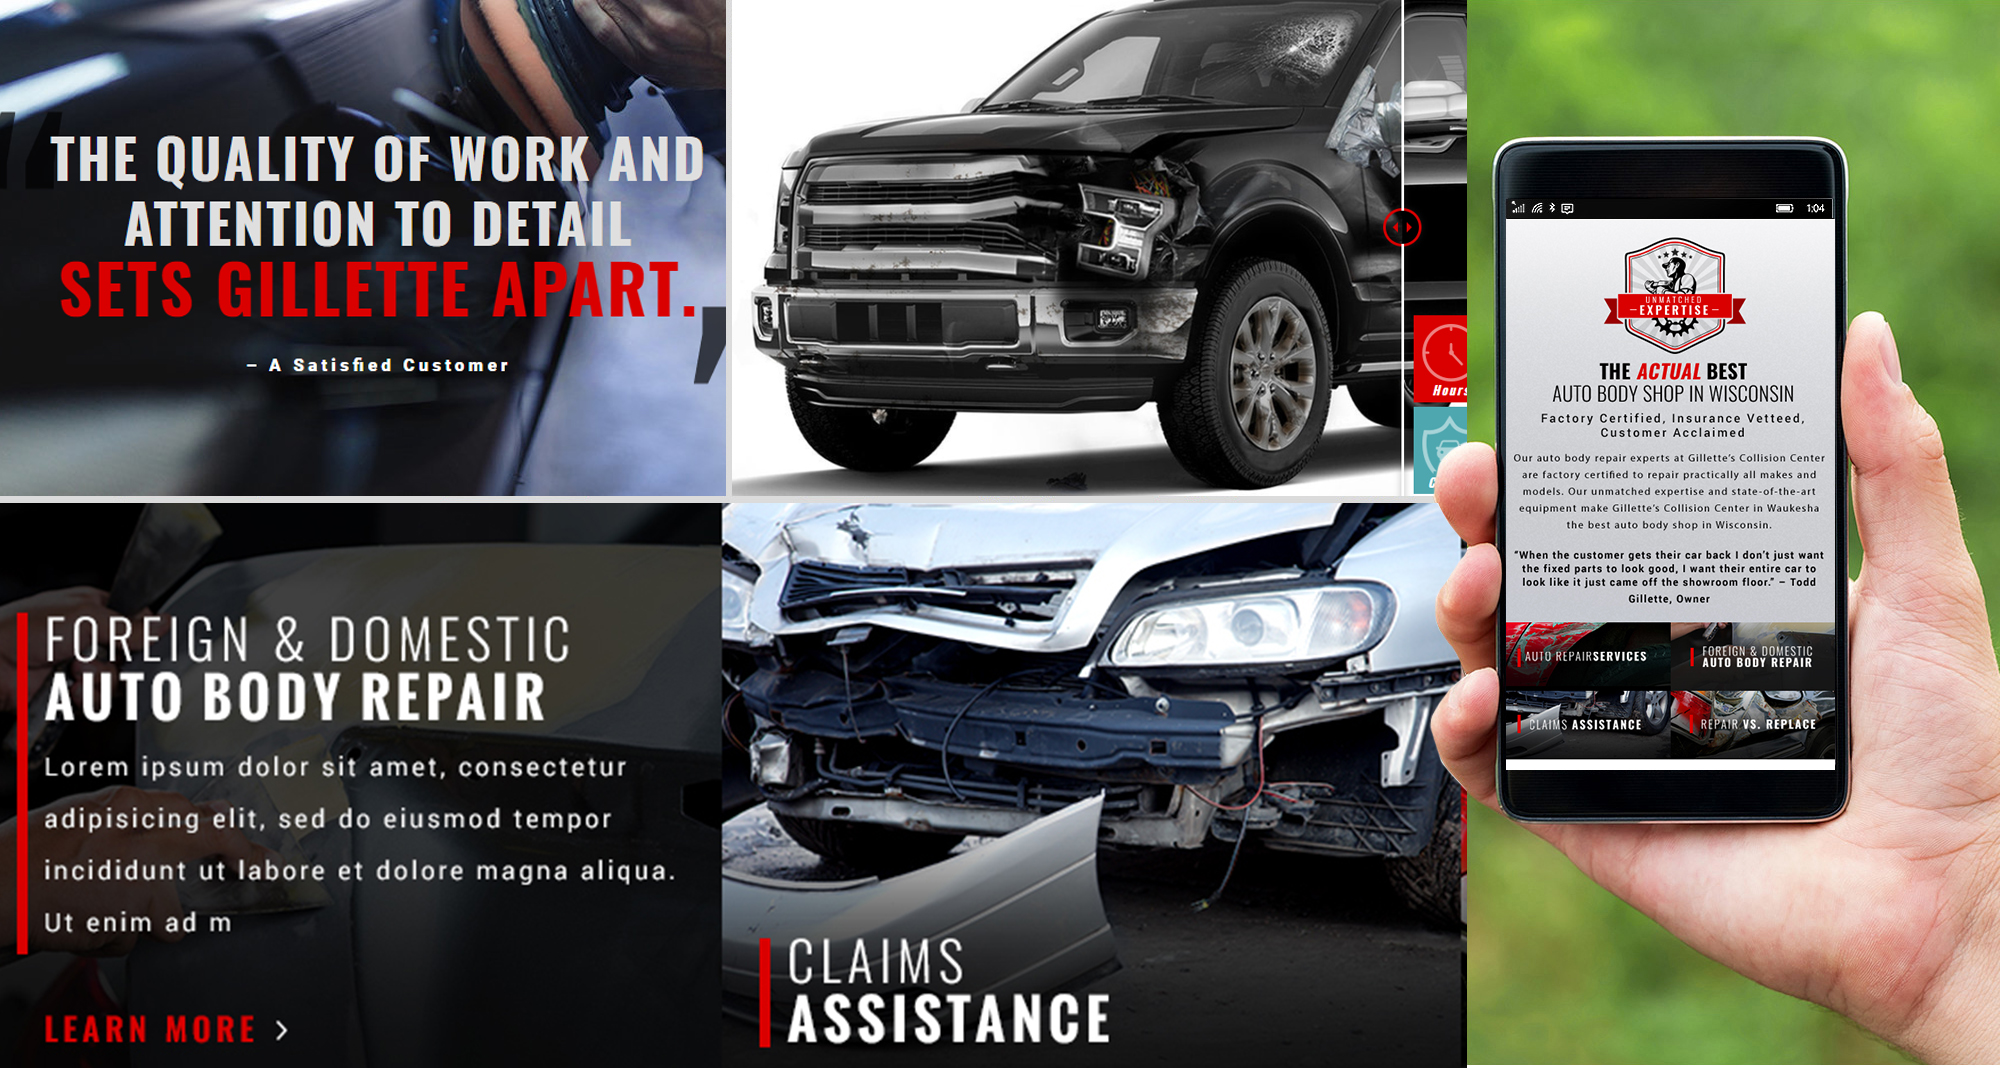 Milwaukee web marketing for Gillette's Collision Center